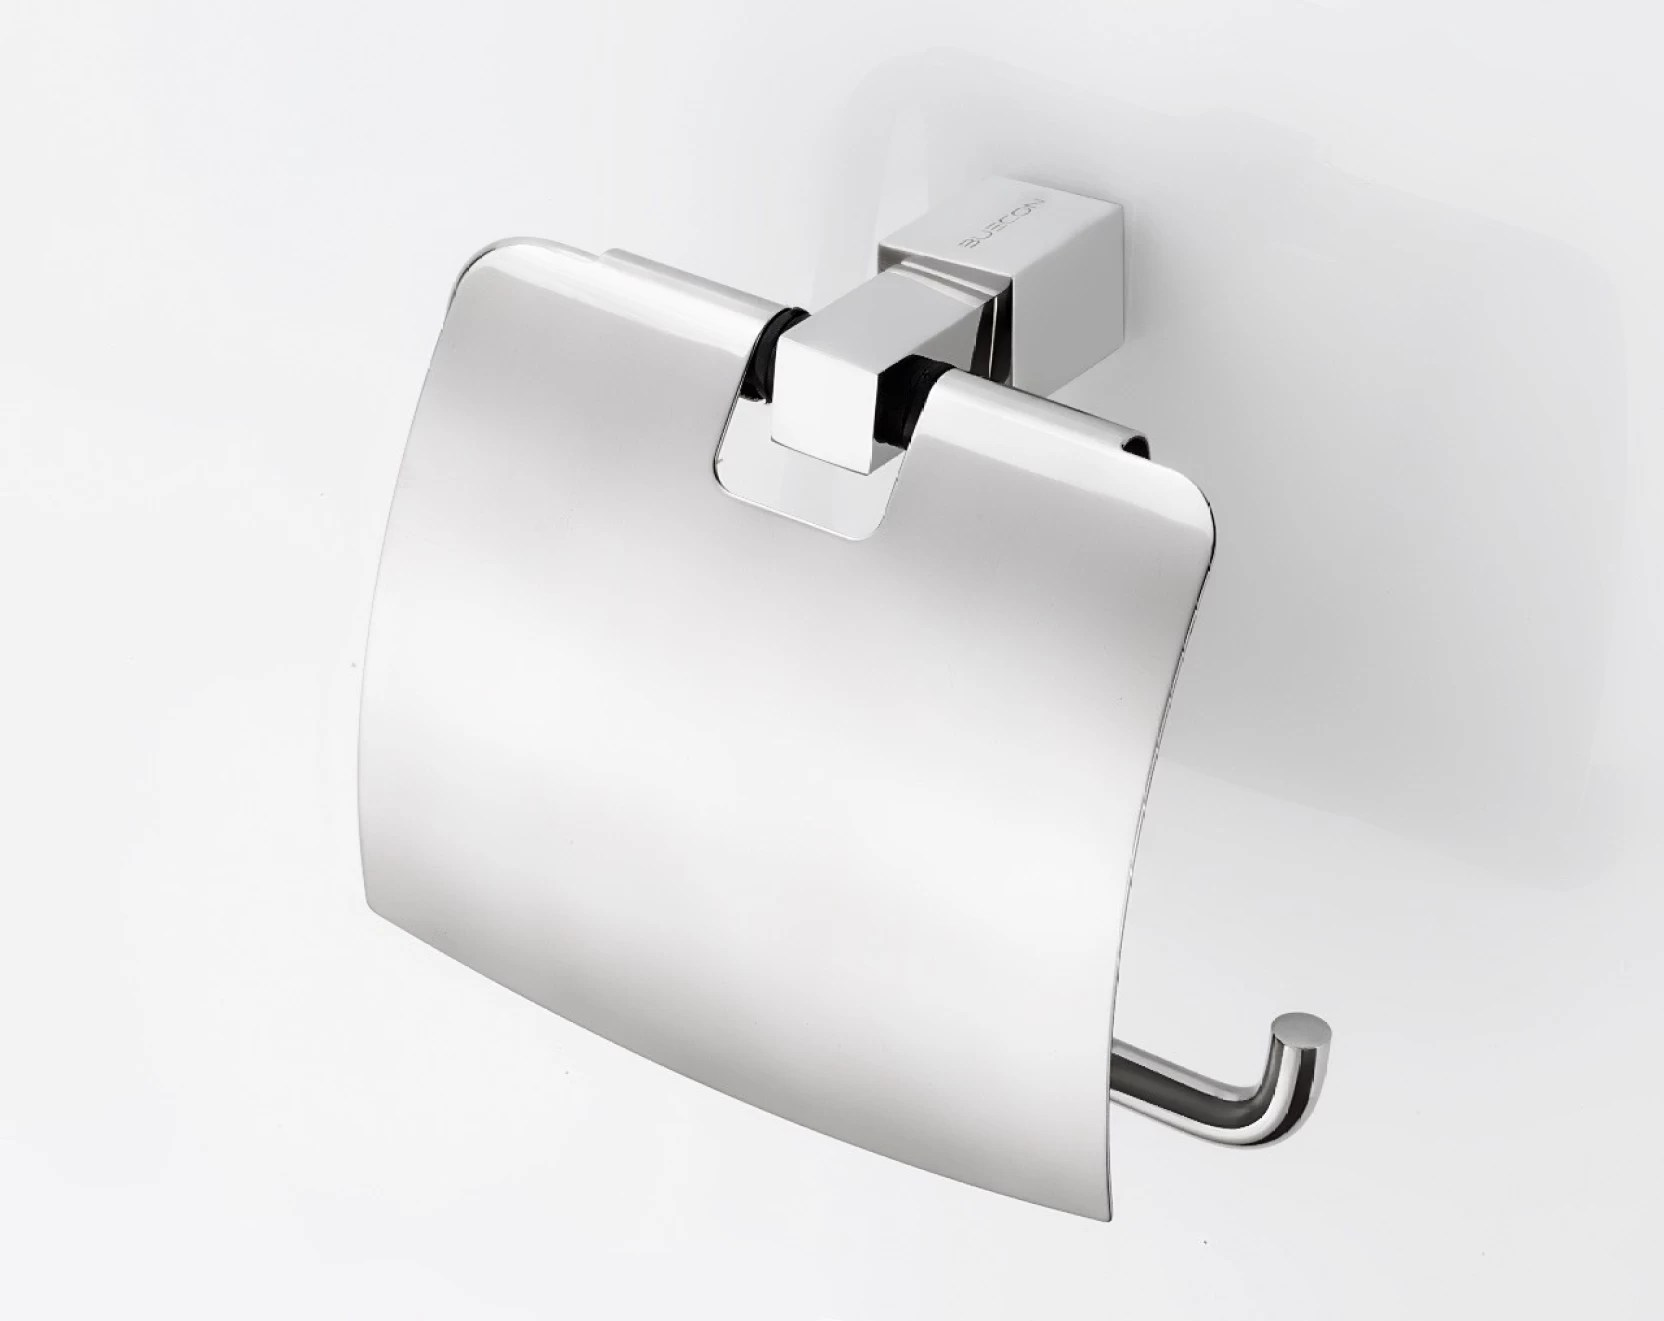 Stainless Steel Toilet Roll Holder Anikaa Sma 409l Buecon Toilet Tissue Paper Holder With Lid Stainless Steel Buecon Super Series Stainless Steel Toilet Paper Holder